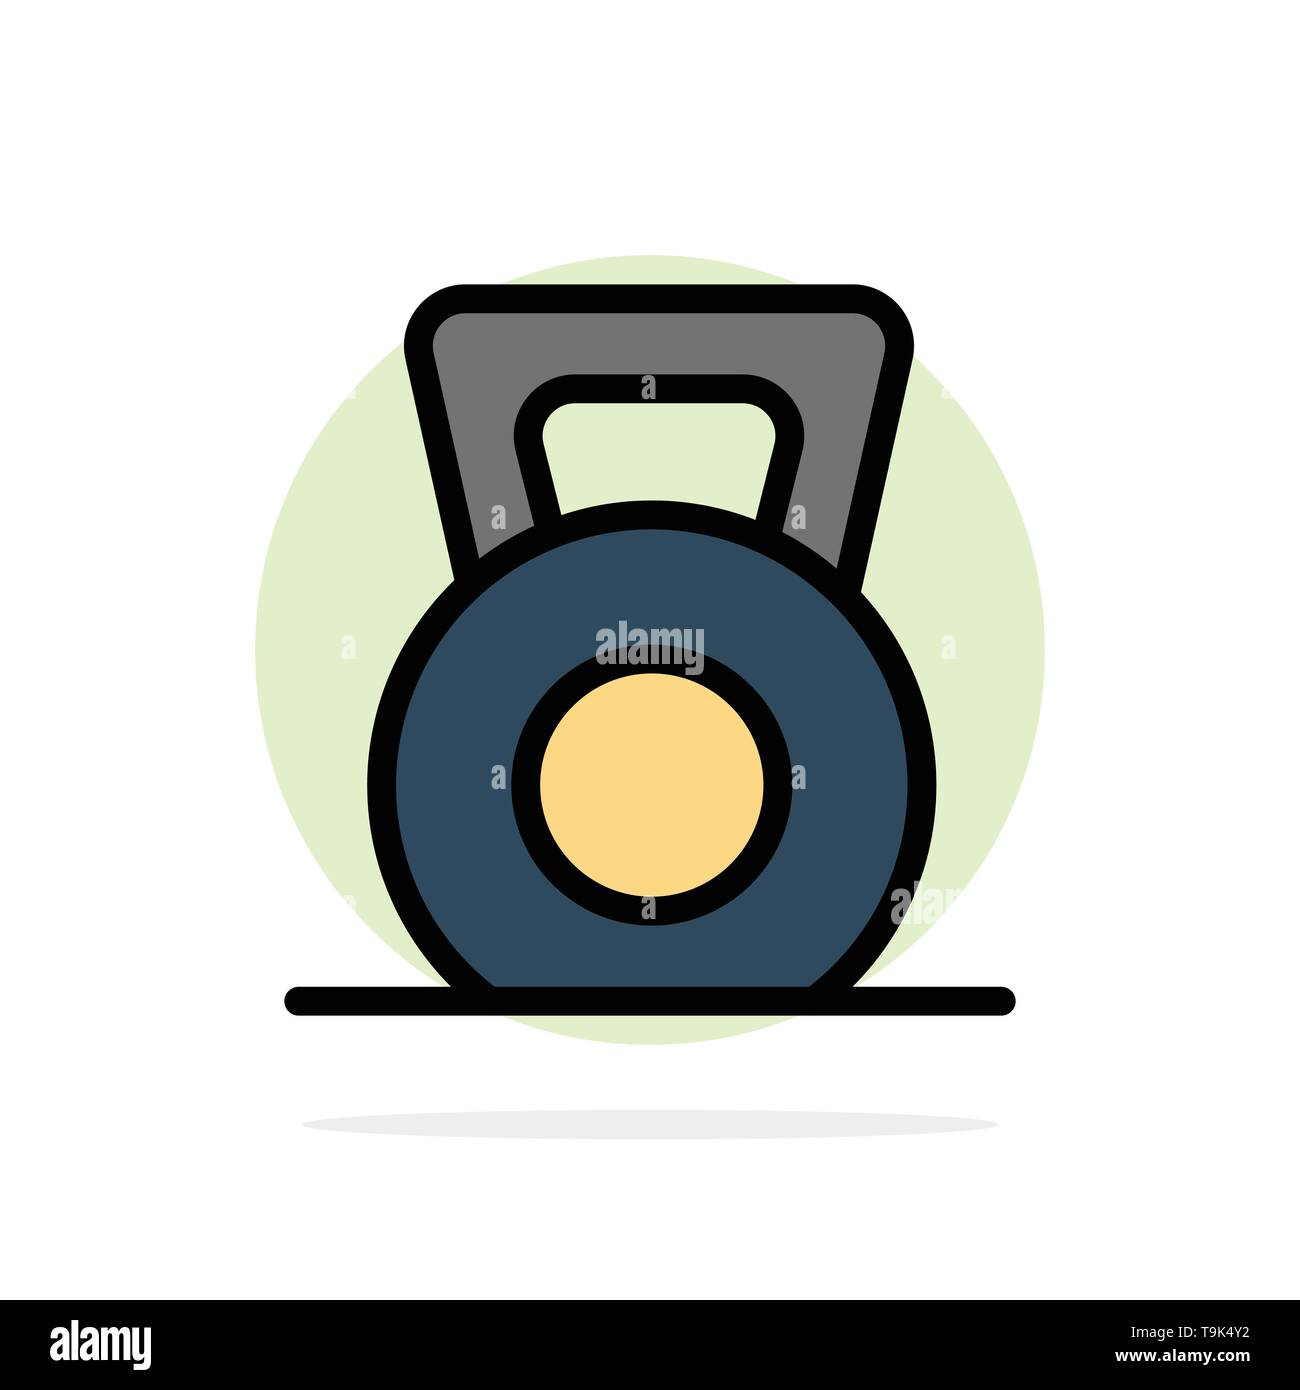 Dumbbell, Fitness, Gym, Lift Abstract Circle Background Flat color Icon - Stock Image